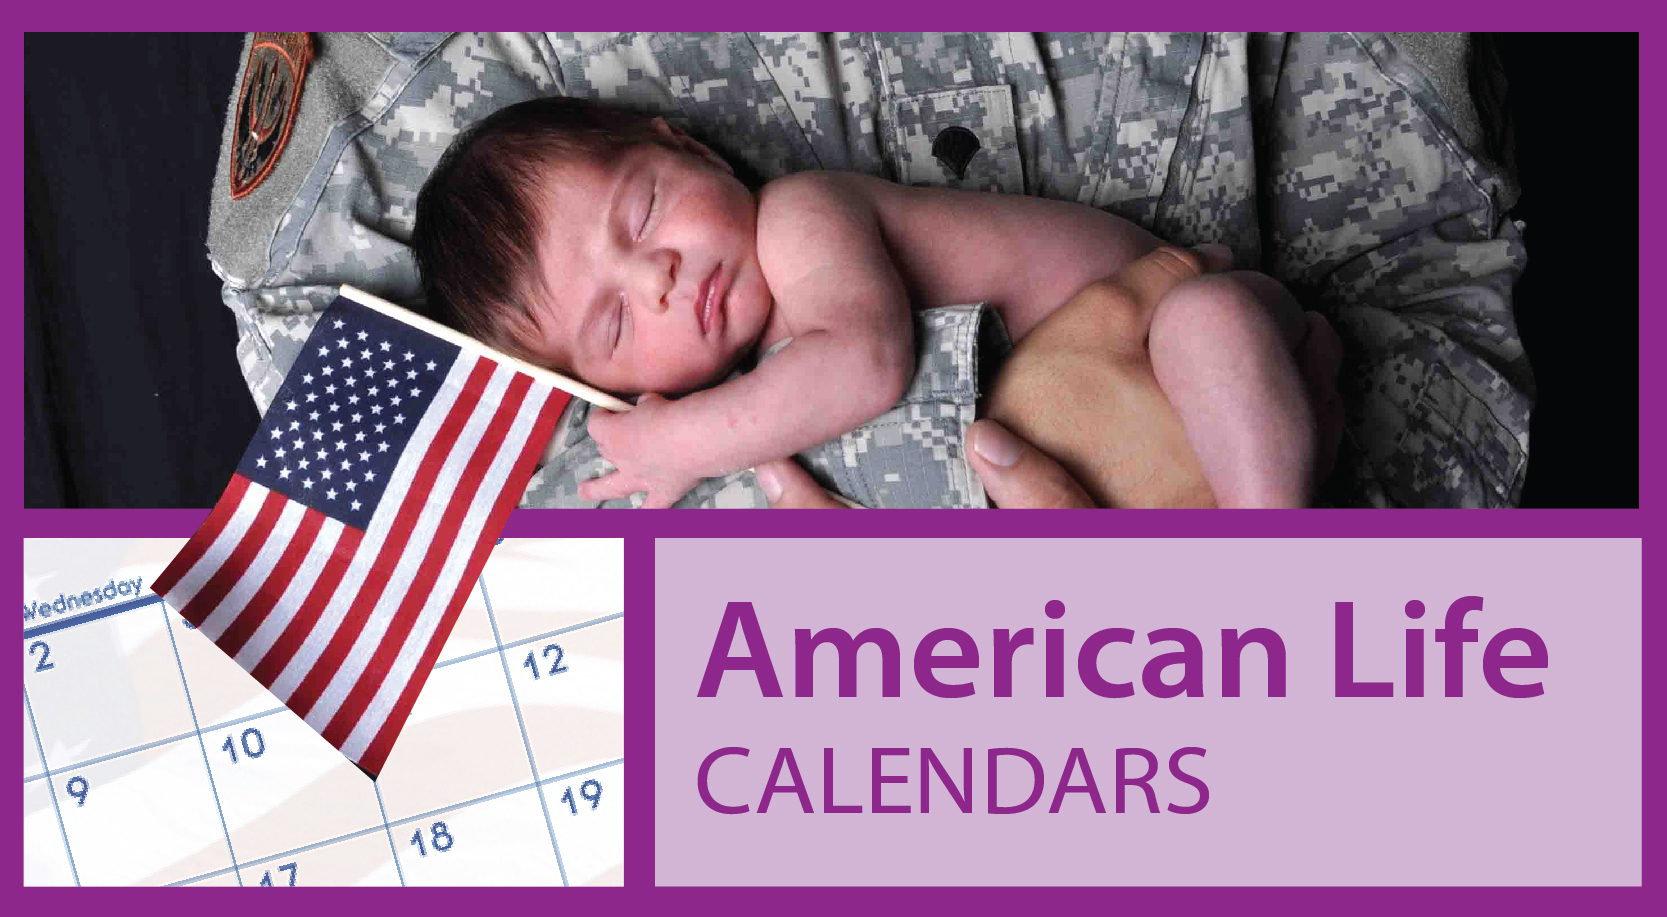 American Life Calendars | Promotional Patriotic Calendars | Custom Military Calendars